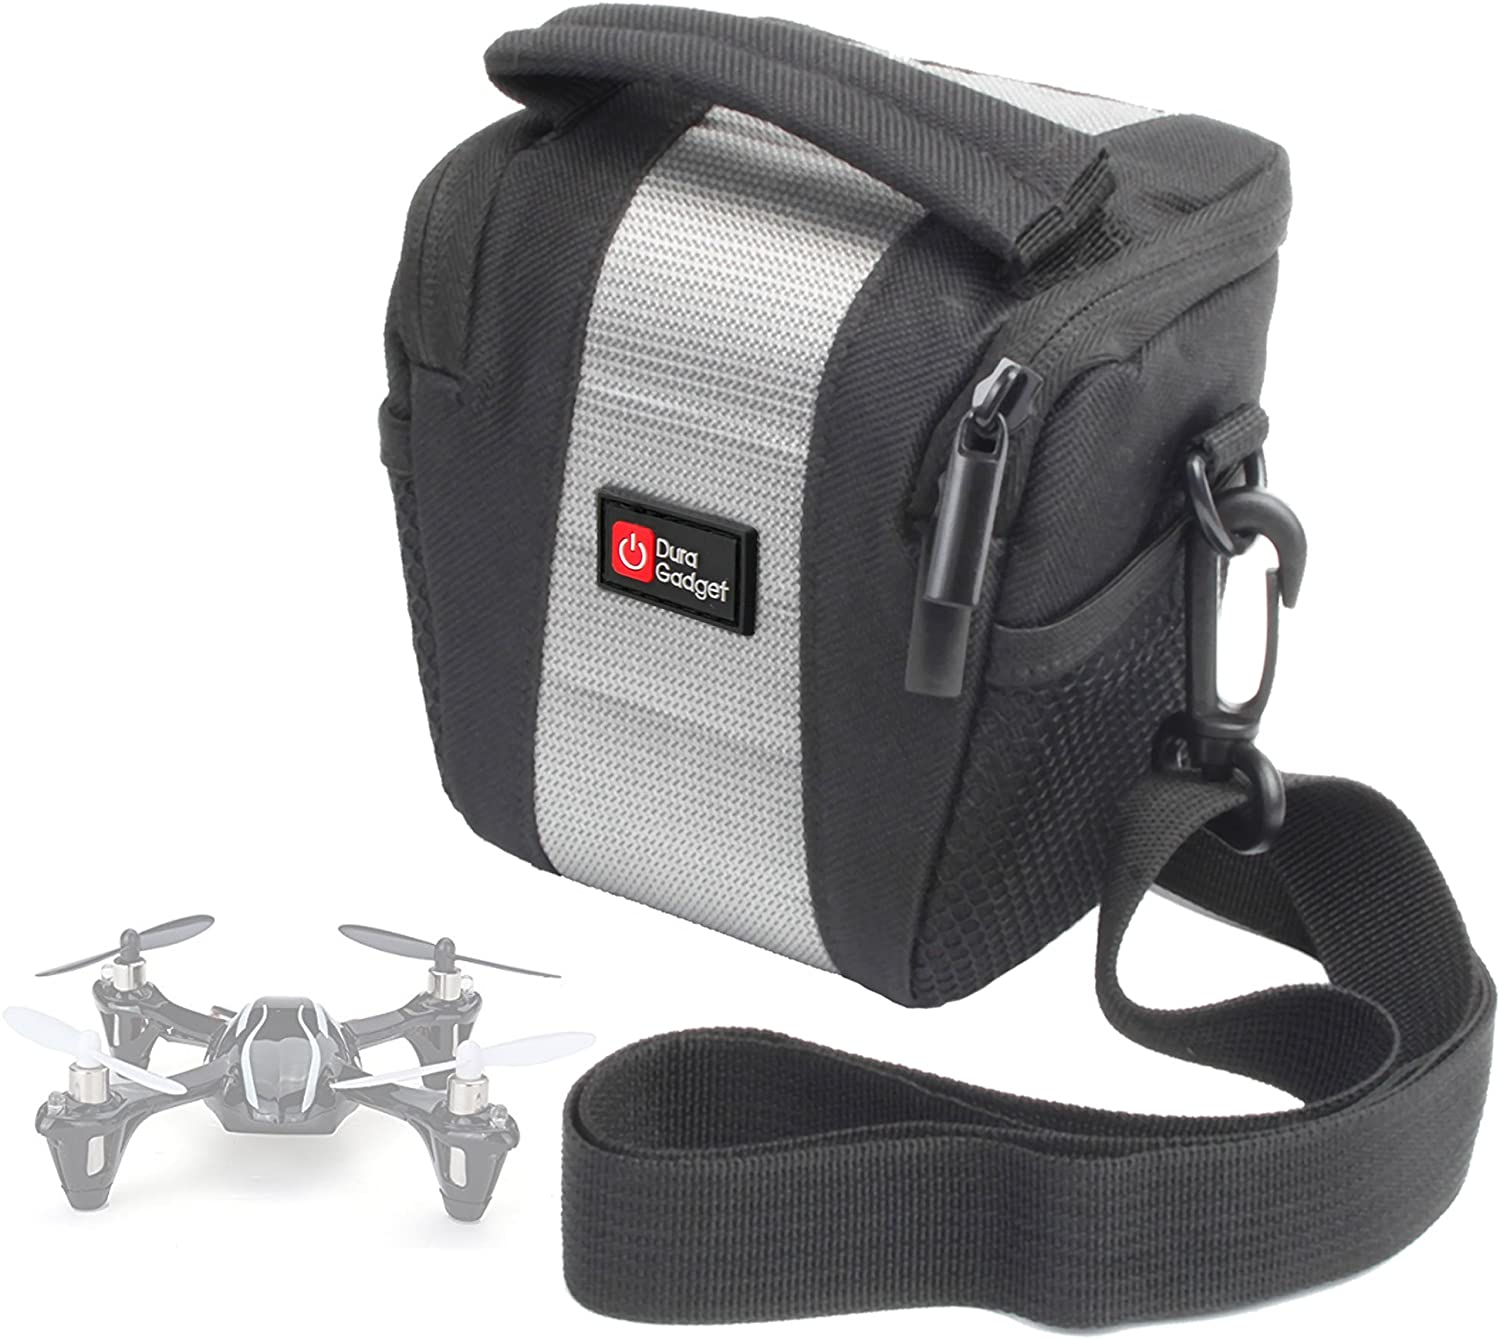 DURAGADGET Water-Resistant Black & Grey Cross-Body Carry Bag - Compatible with The AFUNTA Mini 993 Quadcopter